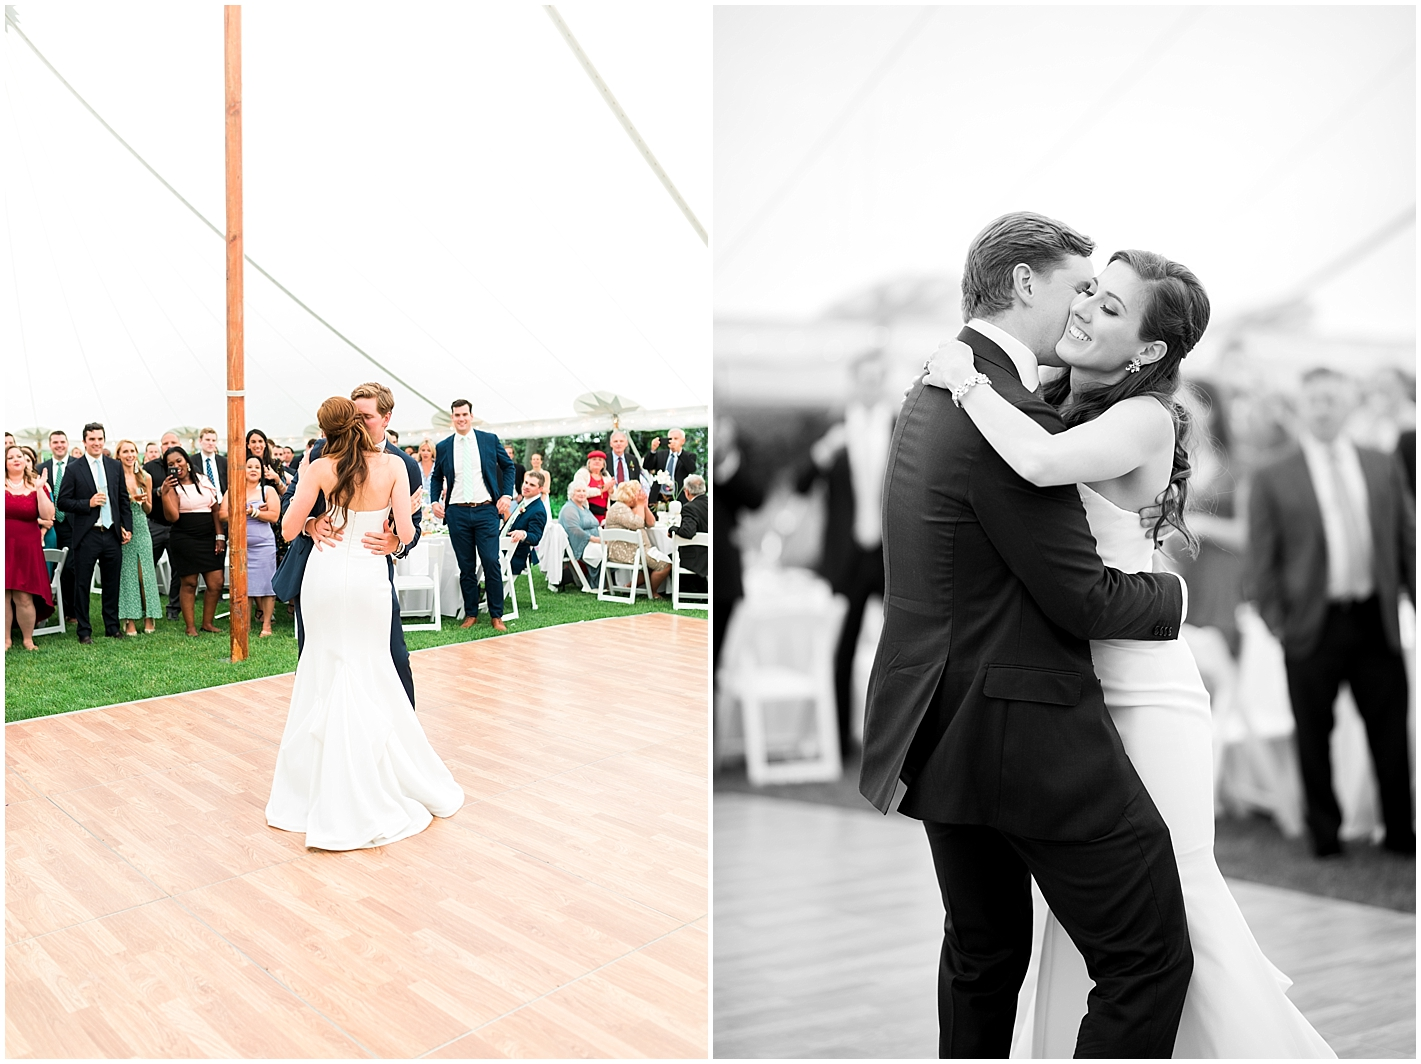 Romantic First Dance Photos by Alyssa Parker Photography